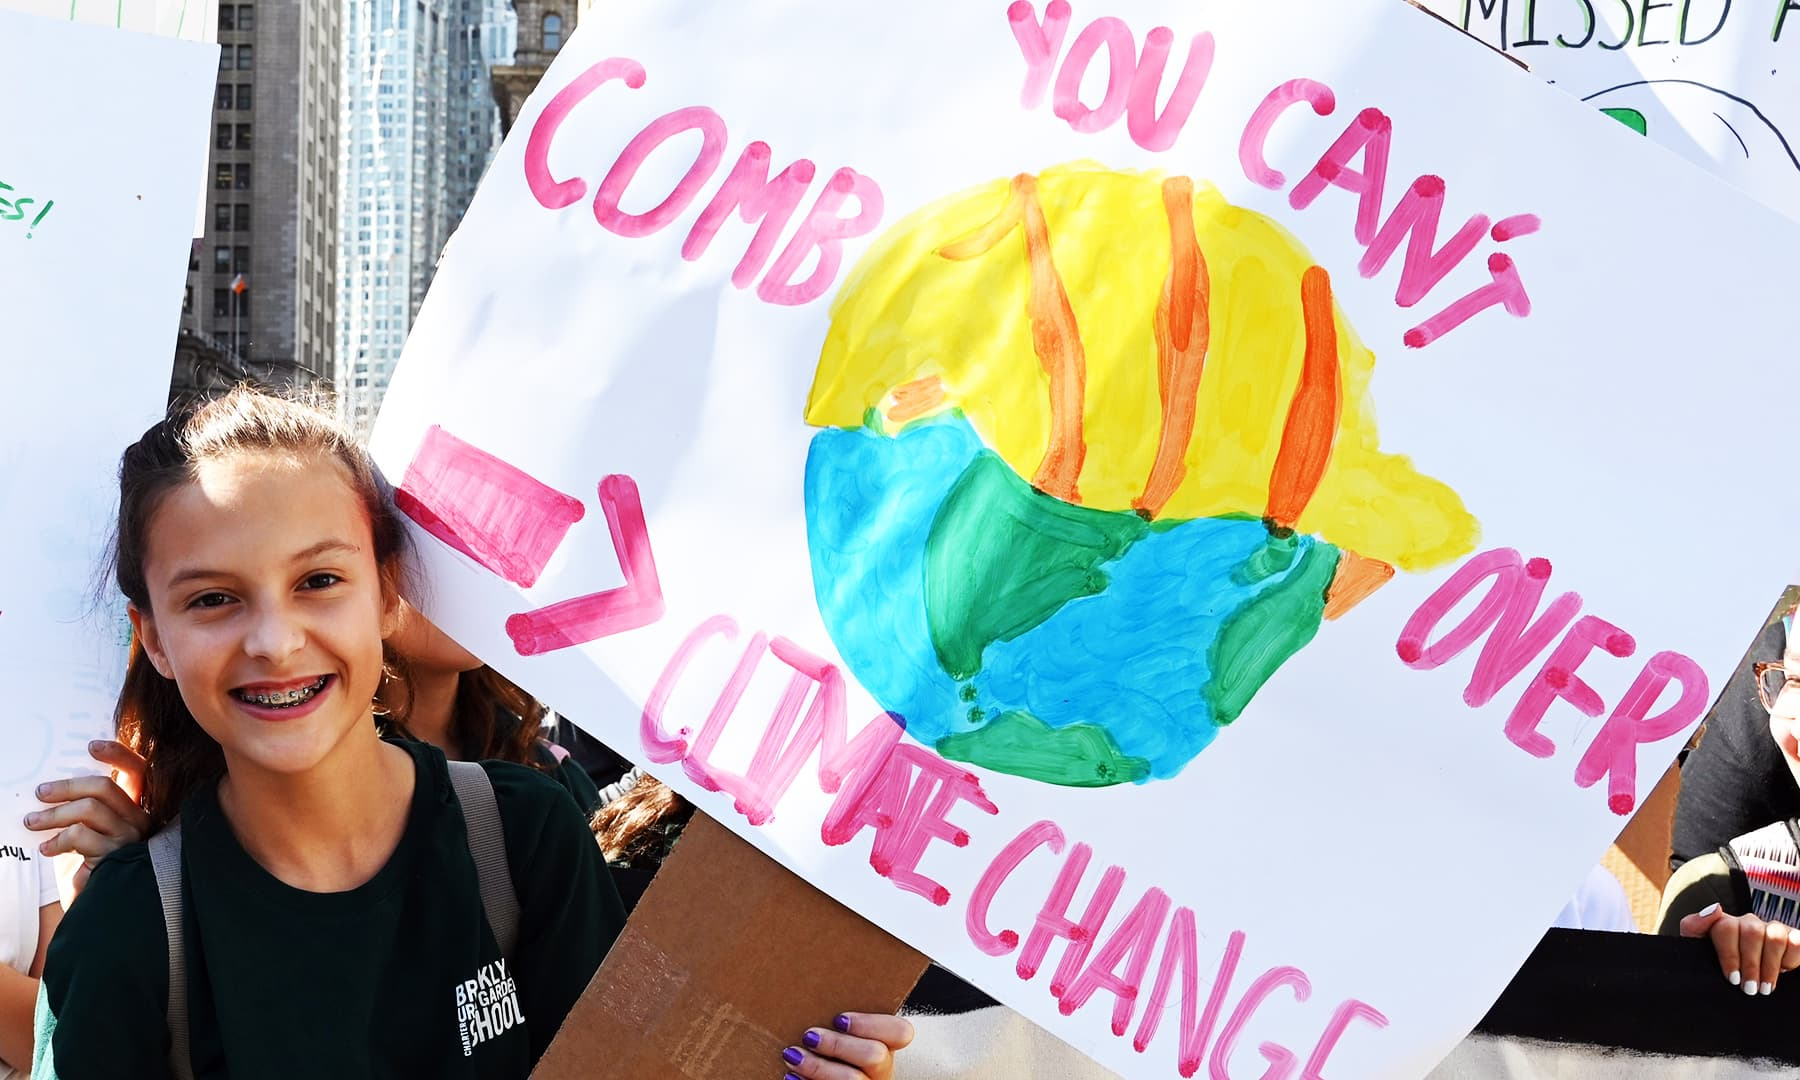 Another student holds up a sign during the Global Climate Strike march at Foley Square in New York.1 AFP